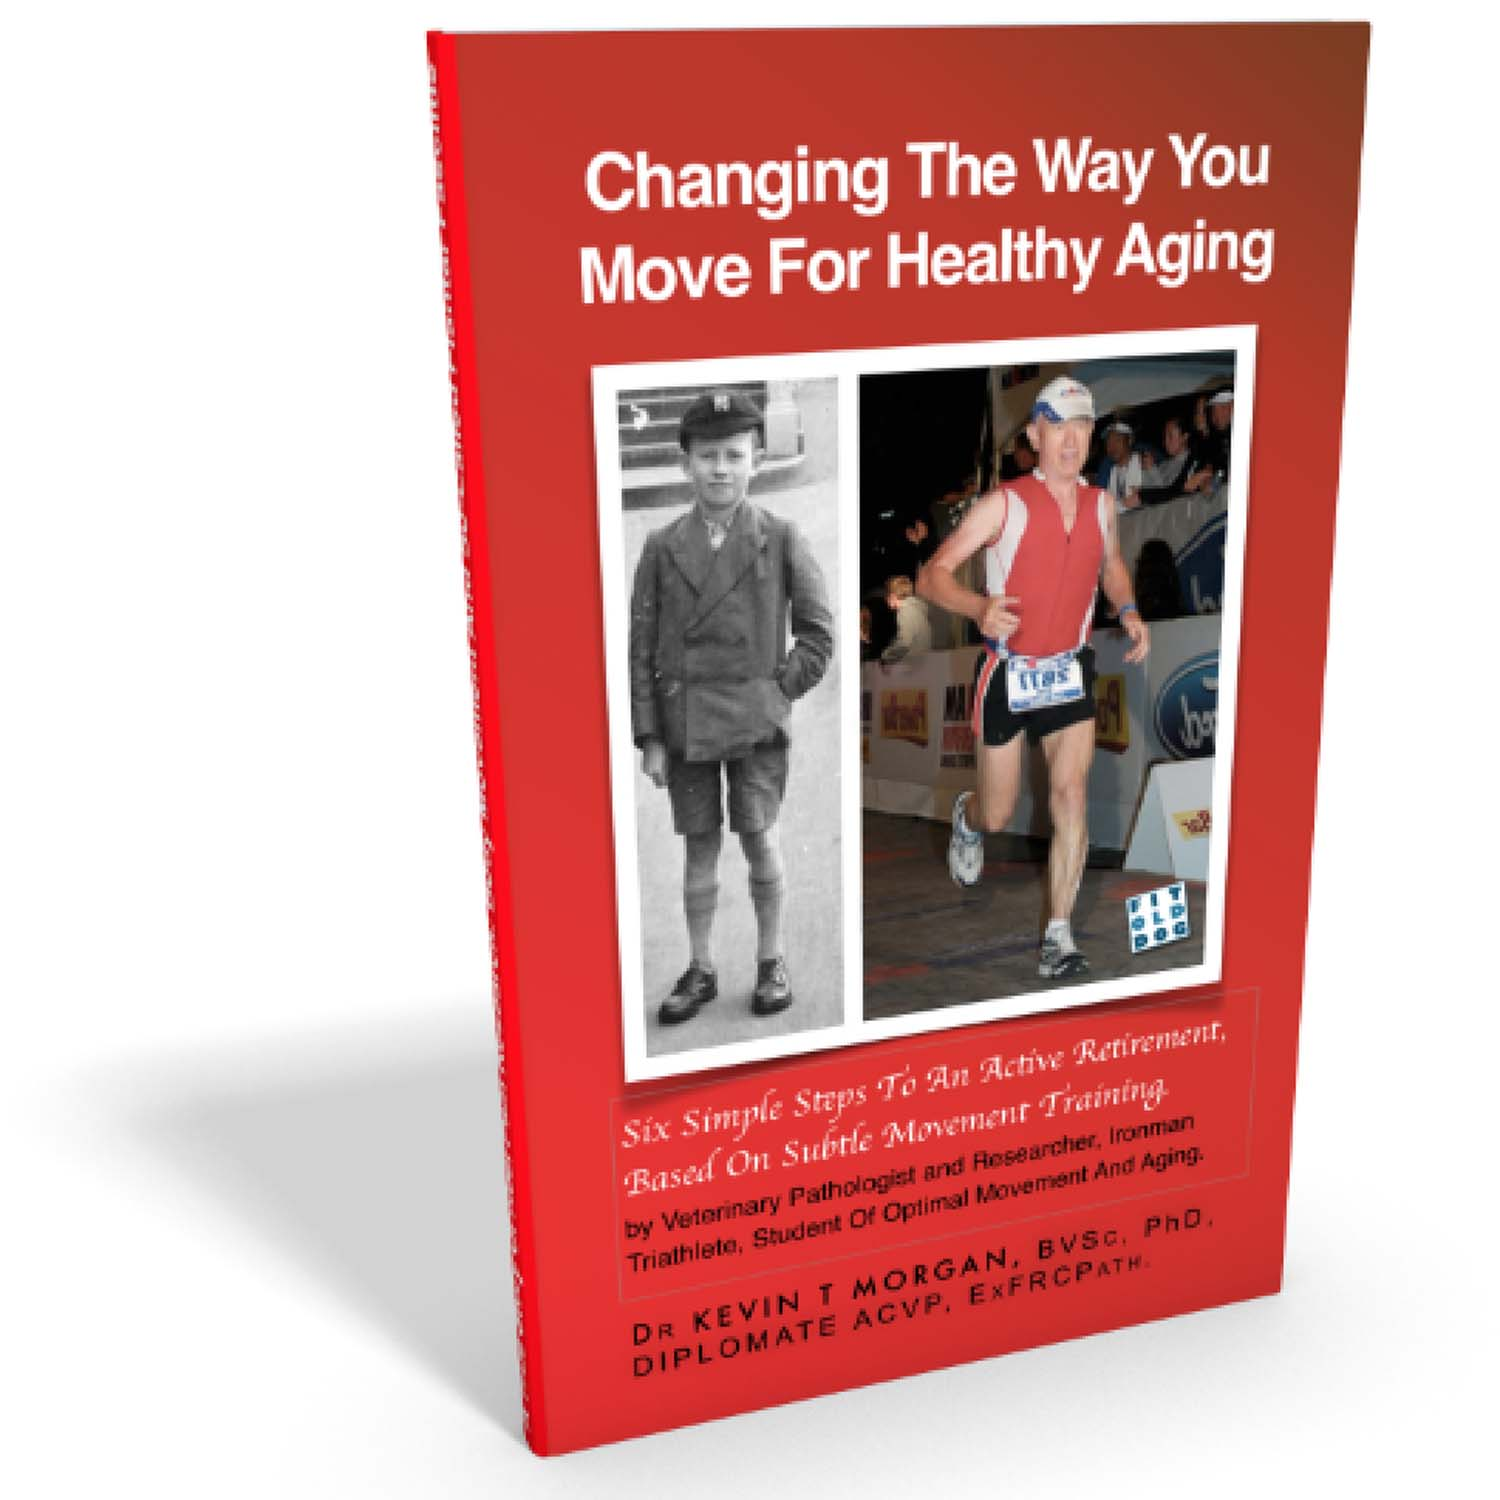 Affordable Movement Training For Active Healthy Aging